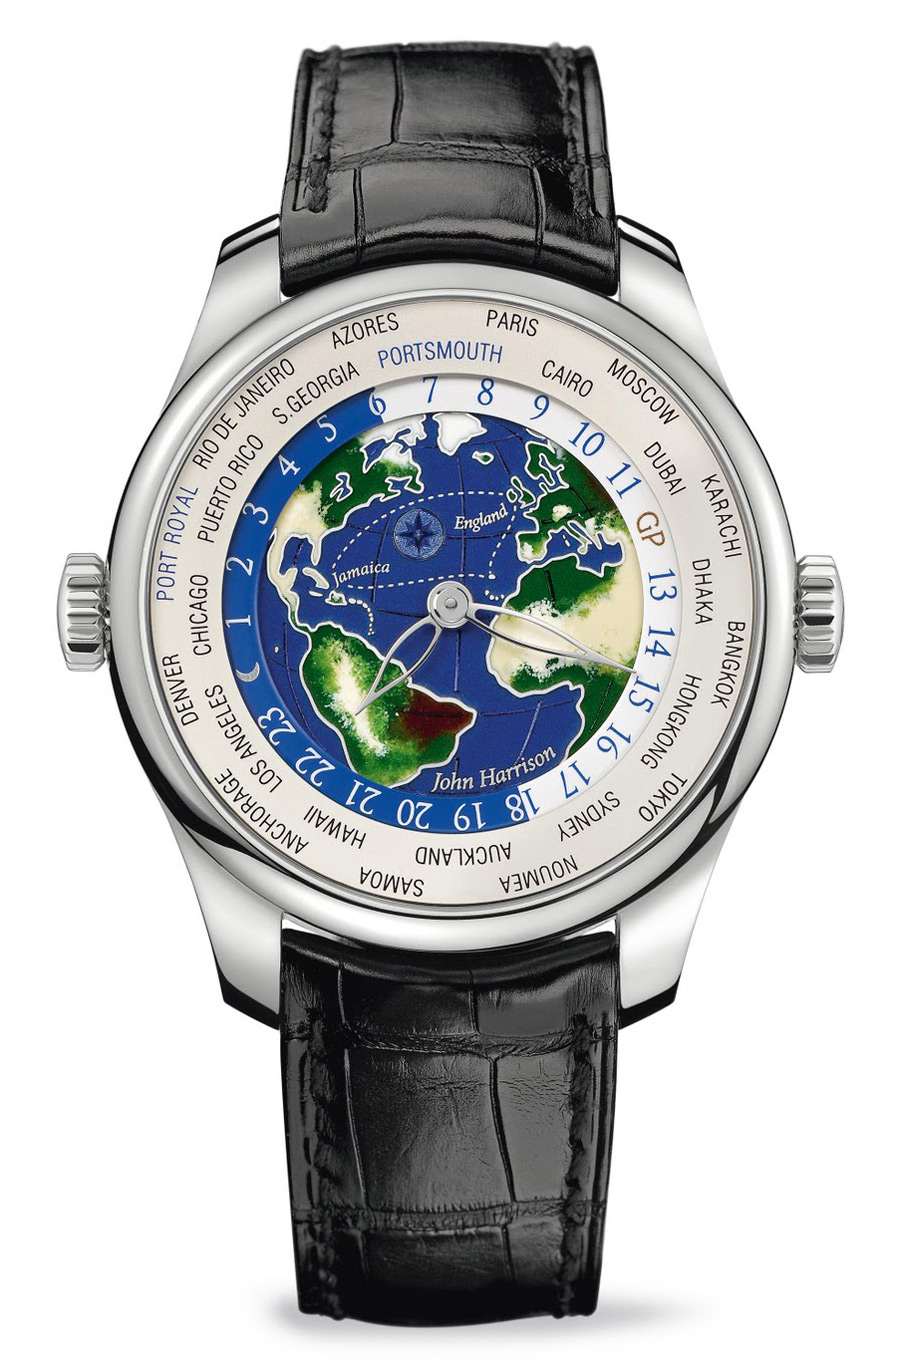 The Girard-Perregaux ww.tc Enamel John Harrison Watch